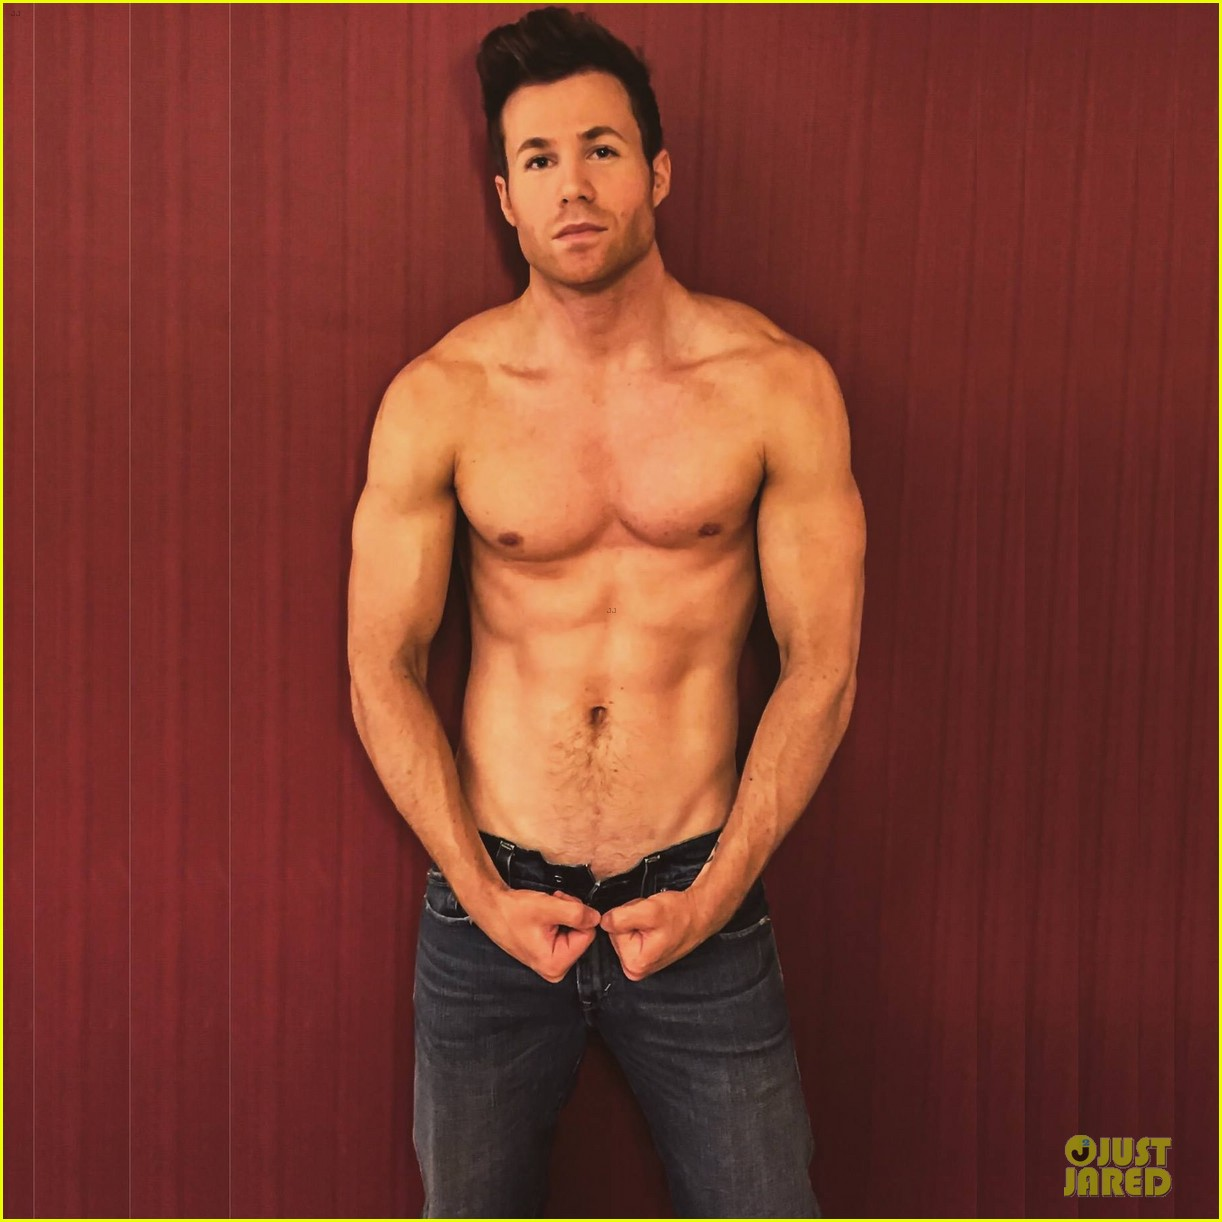 ashley parker angel let you go lyrics